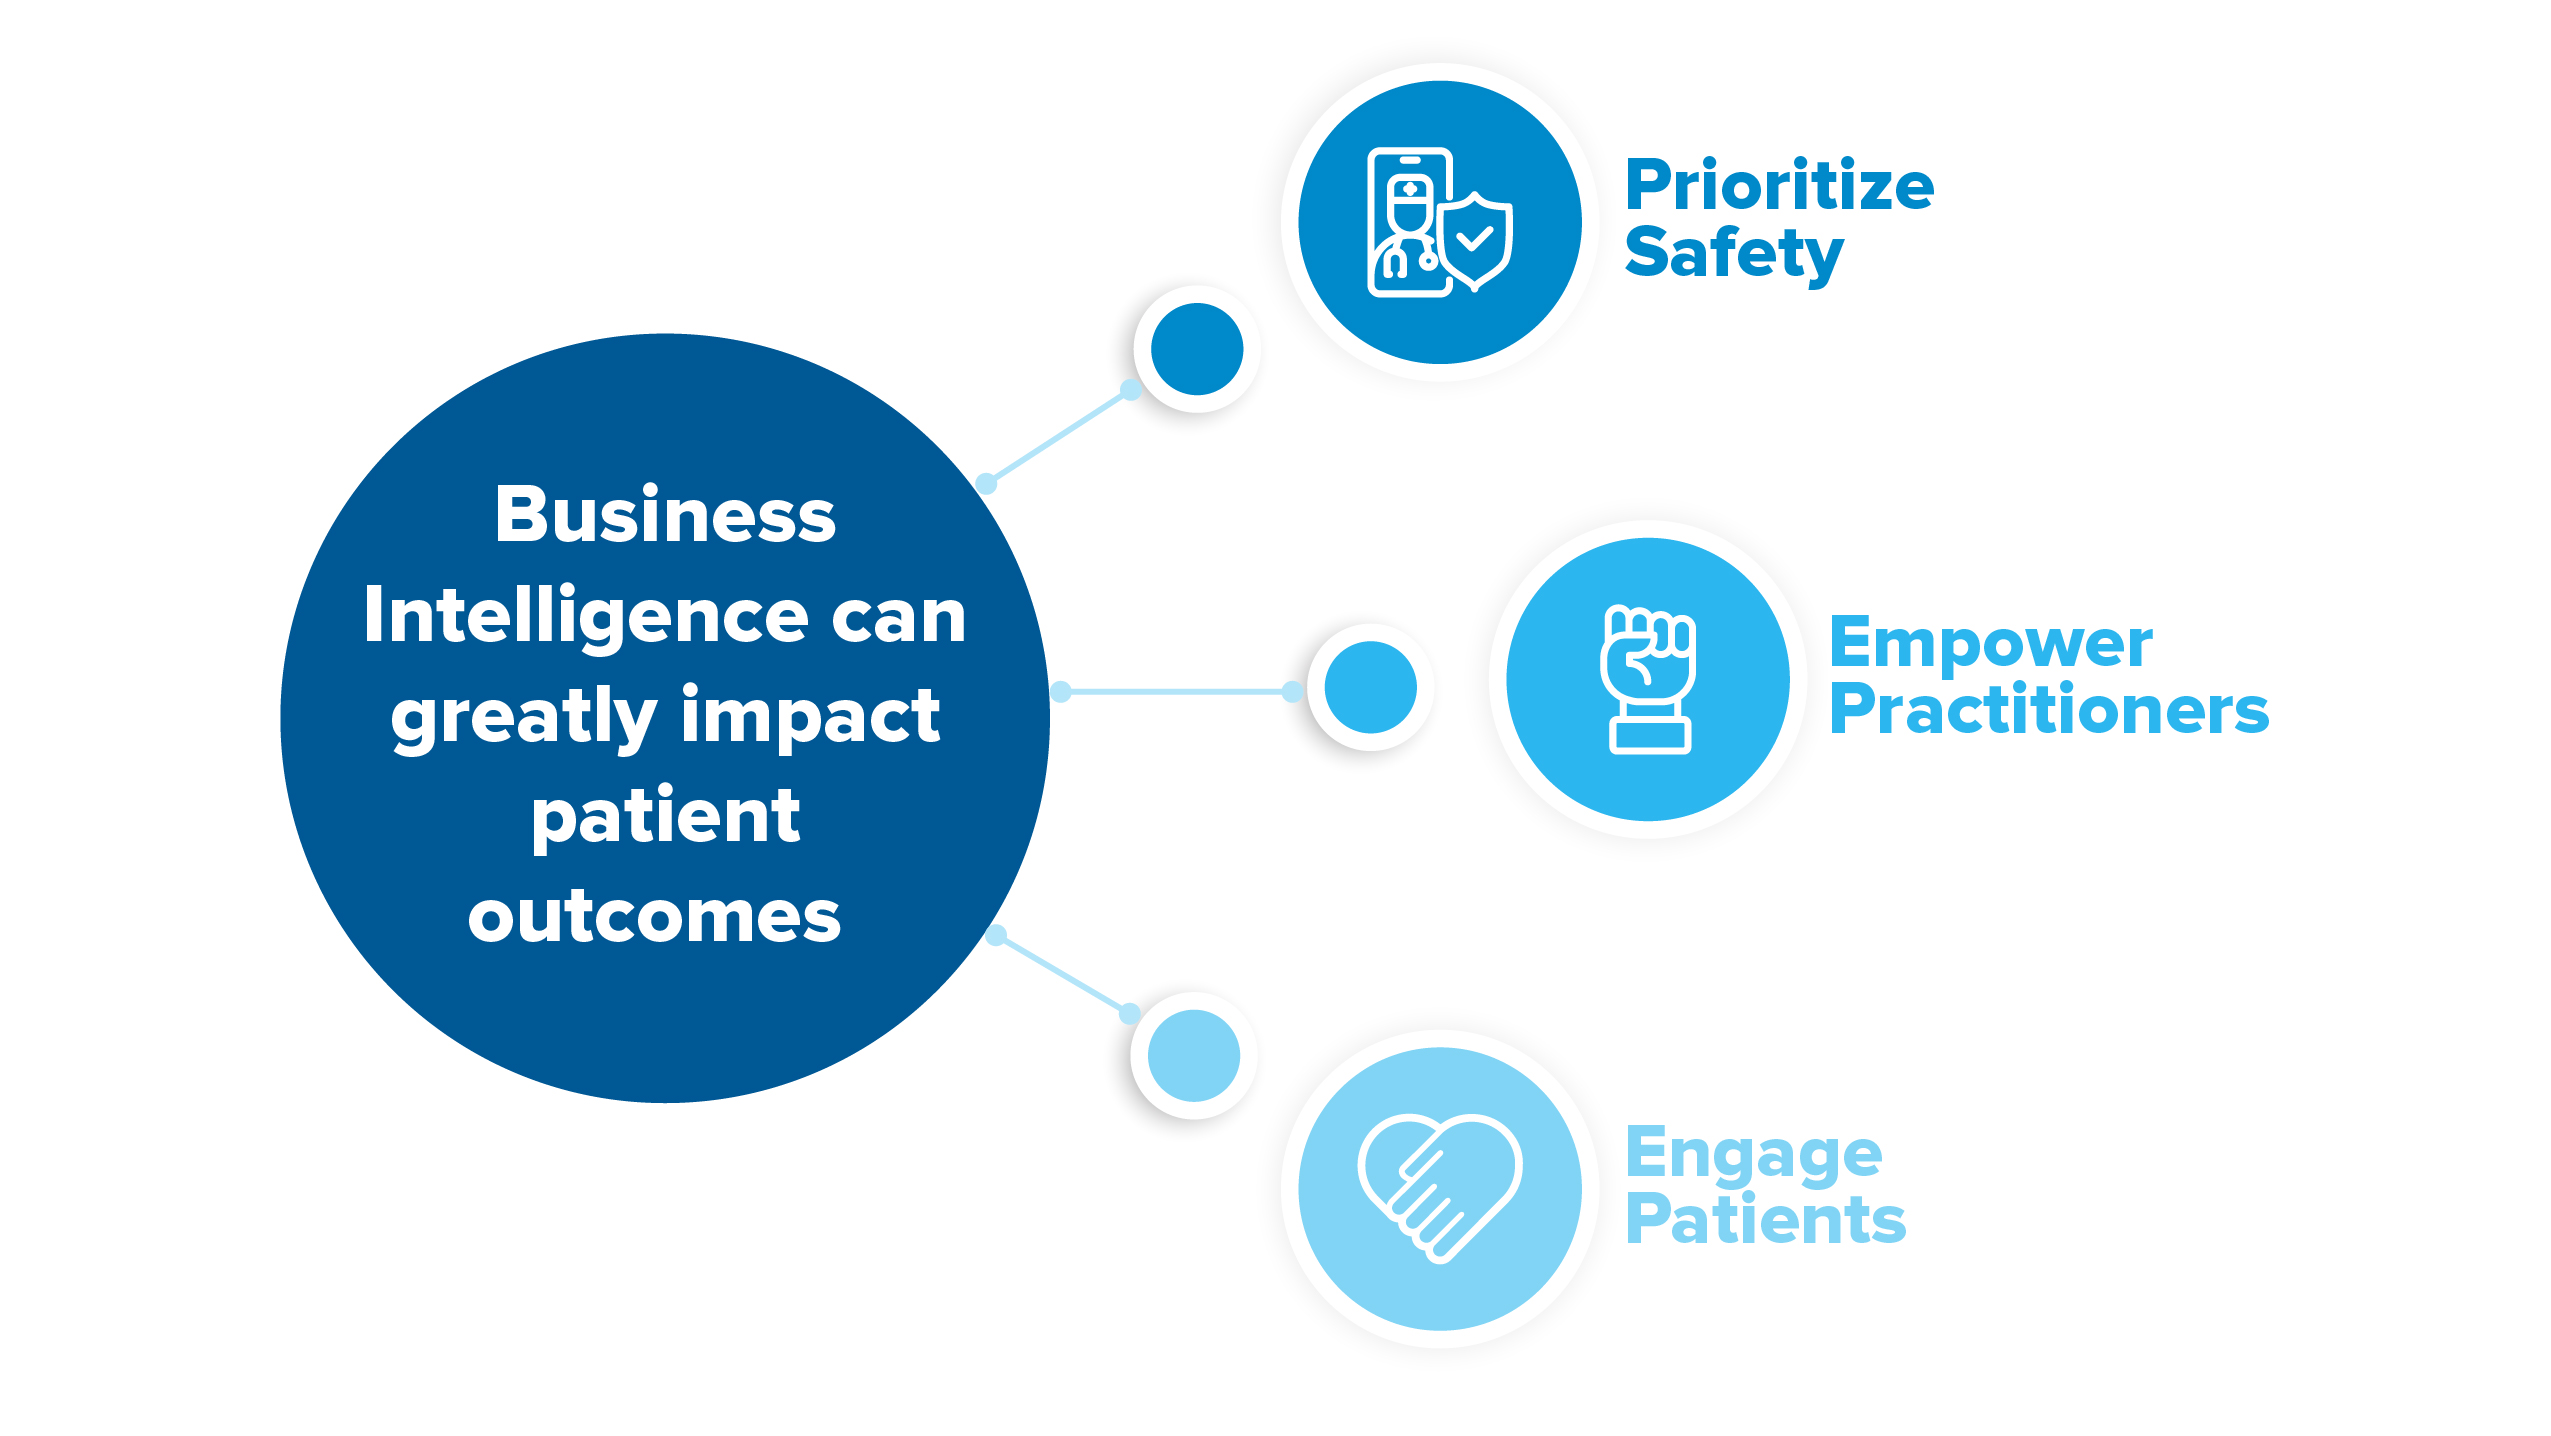 business intelligence can greatly impact patient outcomes